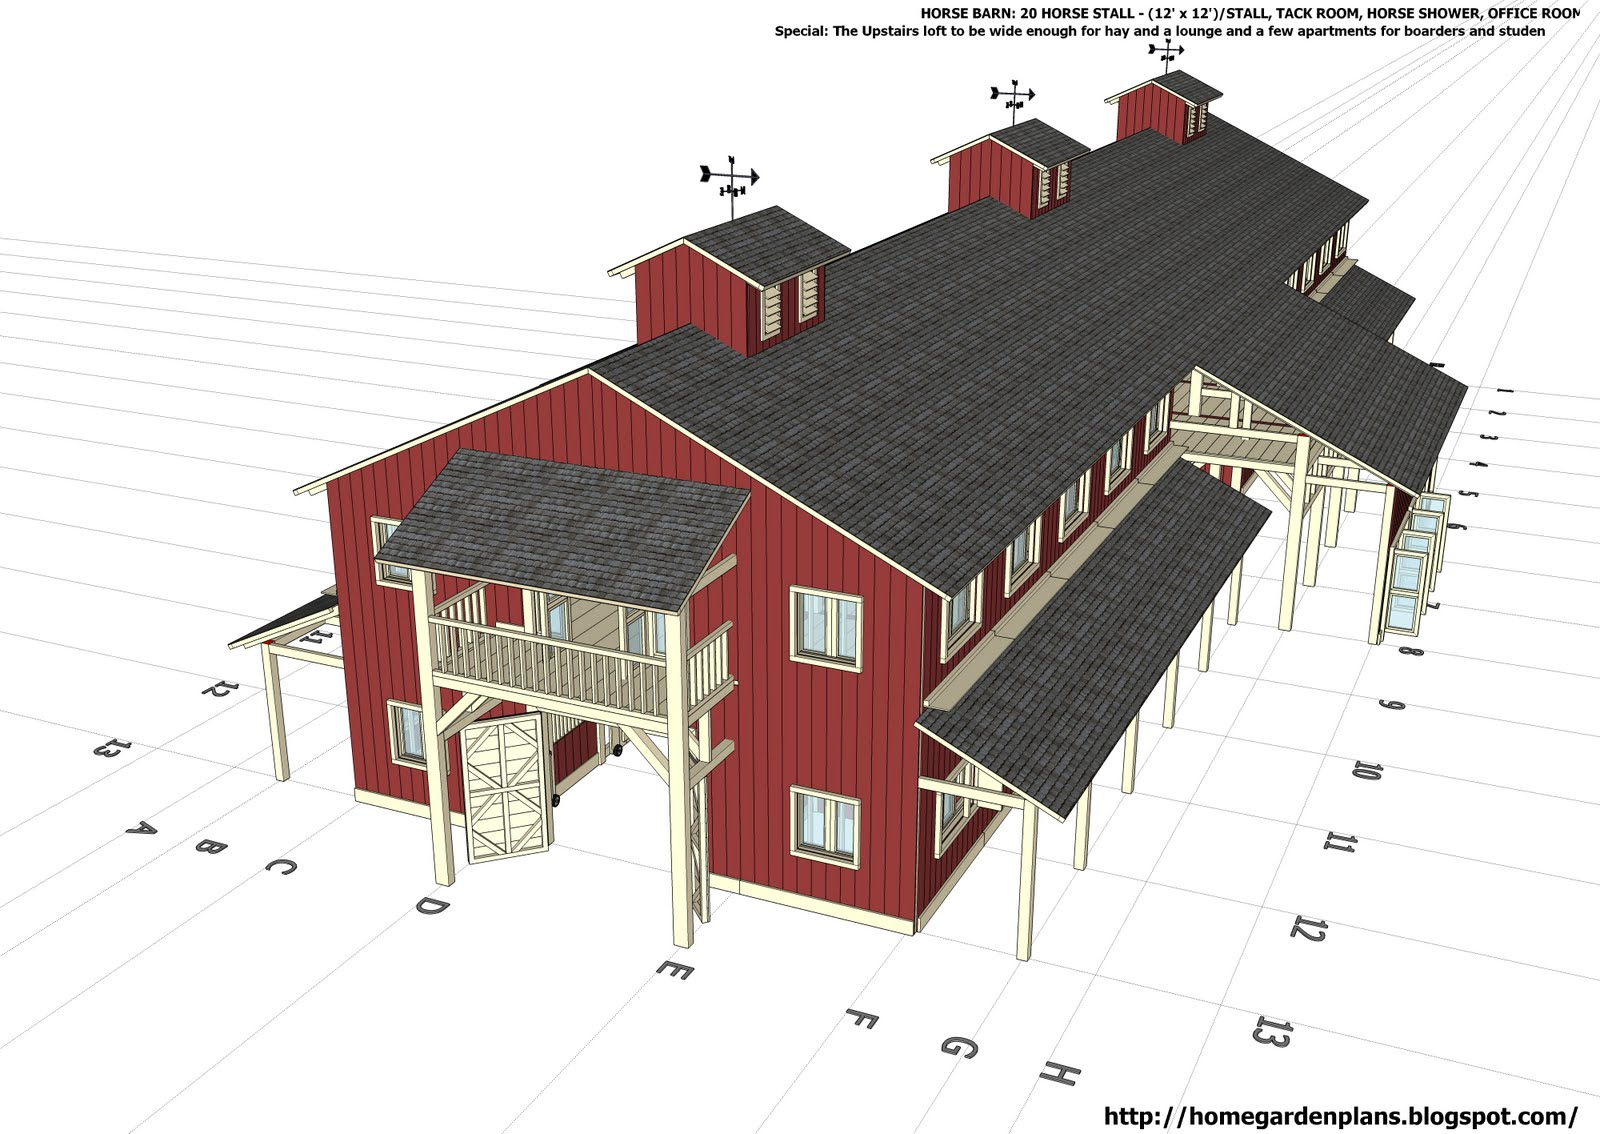 Curtis pdf plans free pole barn plans with loft for Pole barn blueprints free